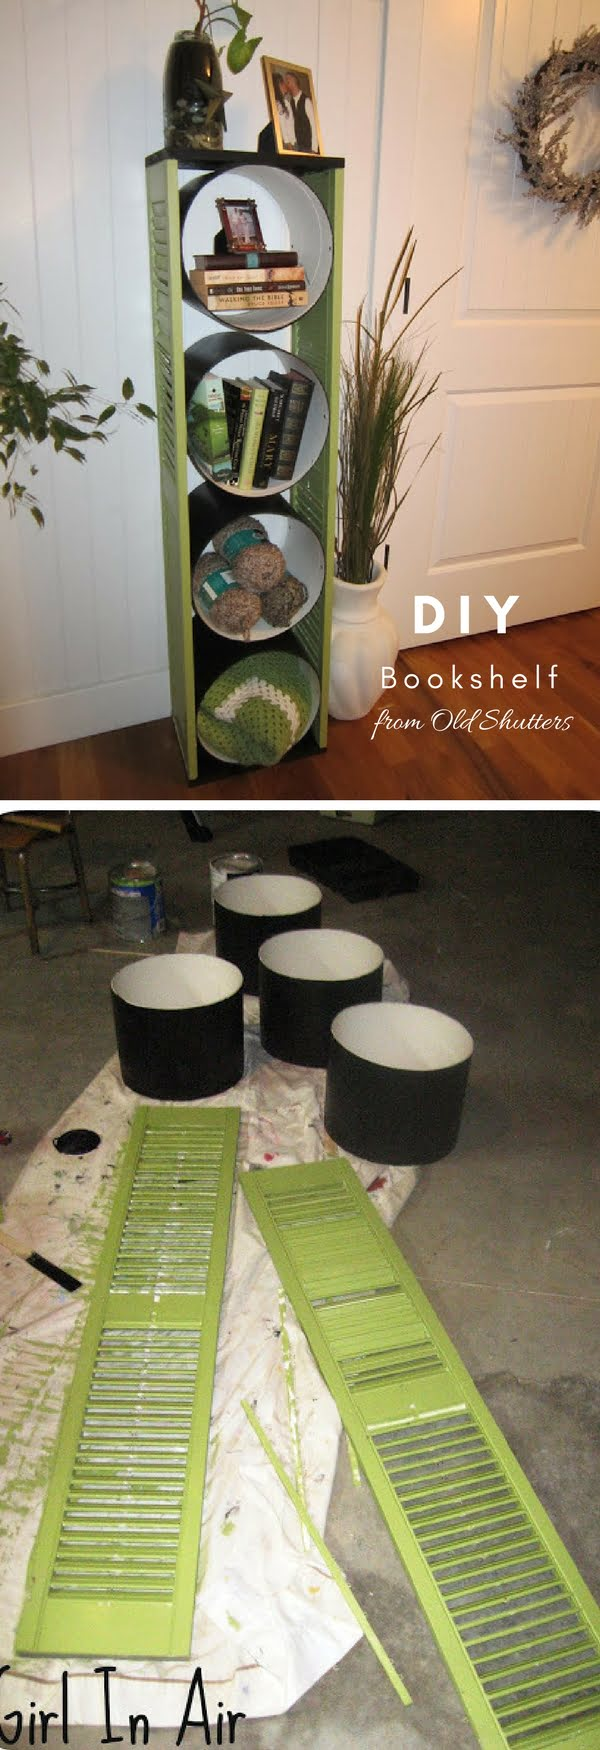 How to build a DIY bookshelf from old shutters